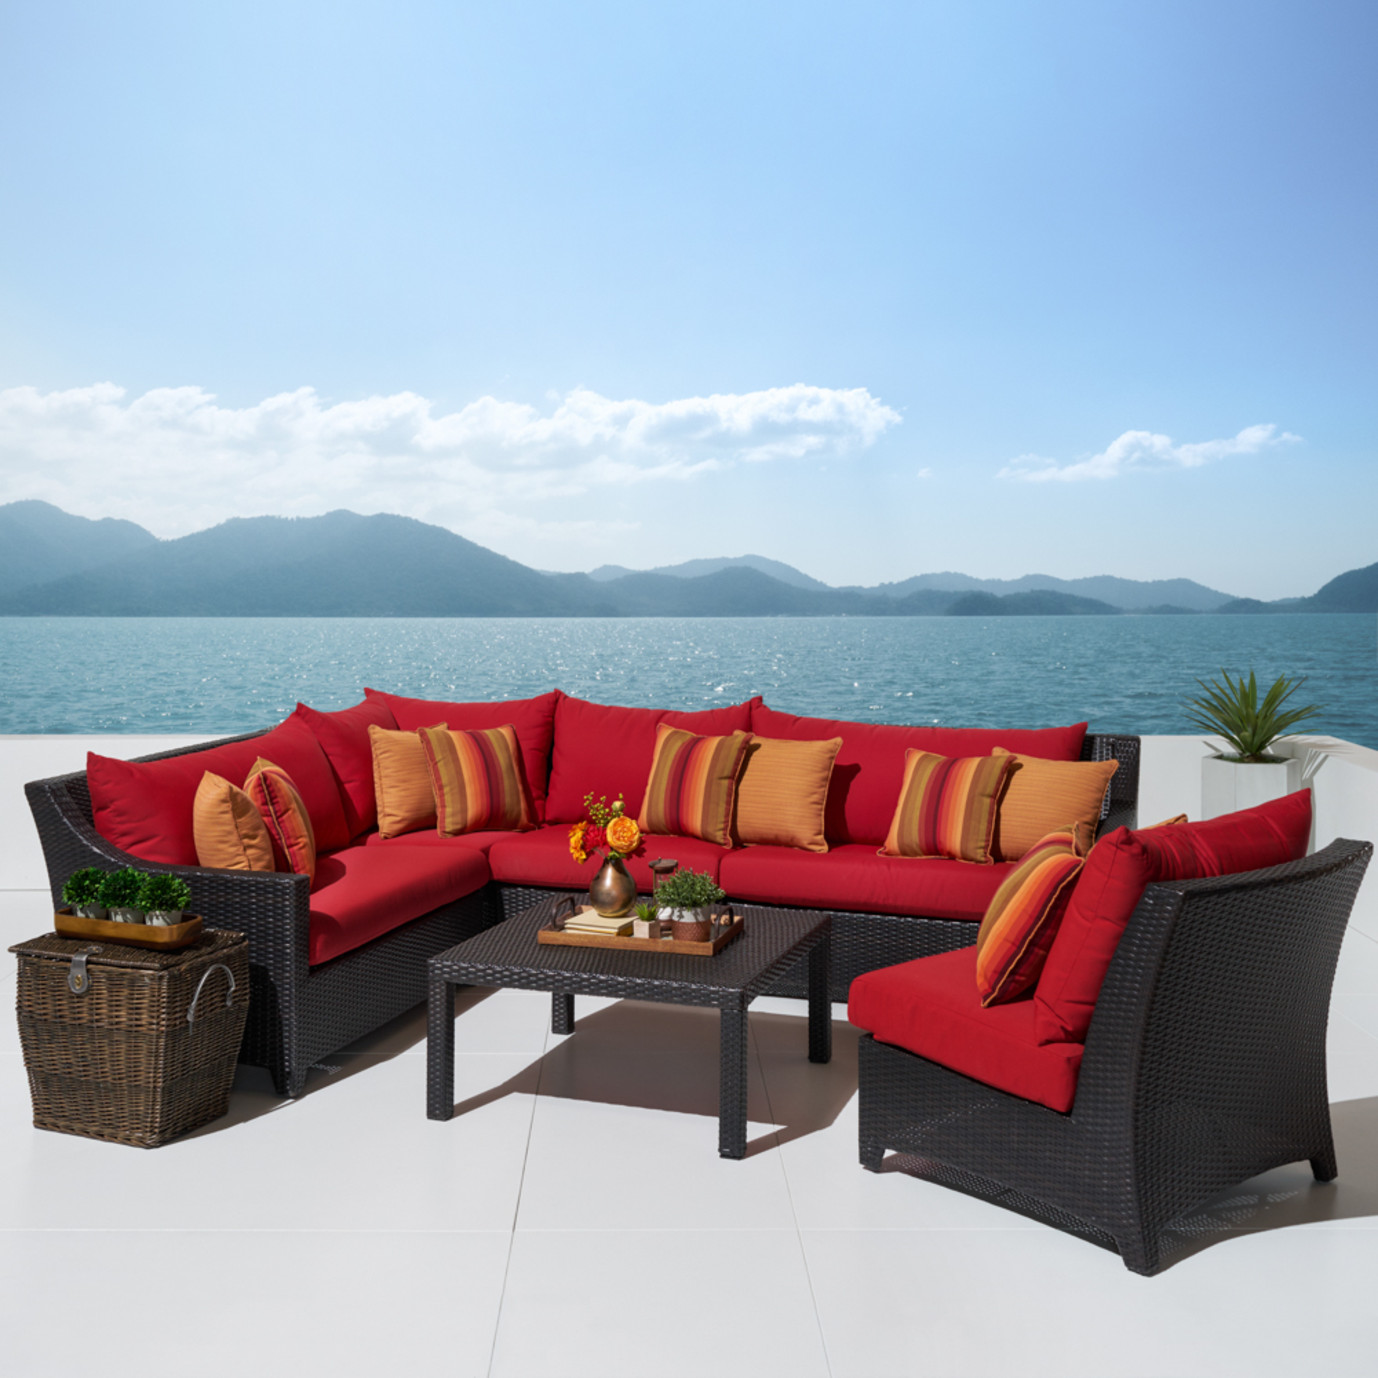 Deco™ 6pc Sectional and Table - Sunset Red